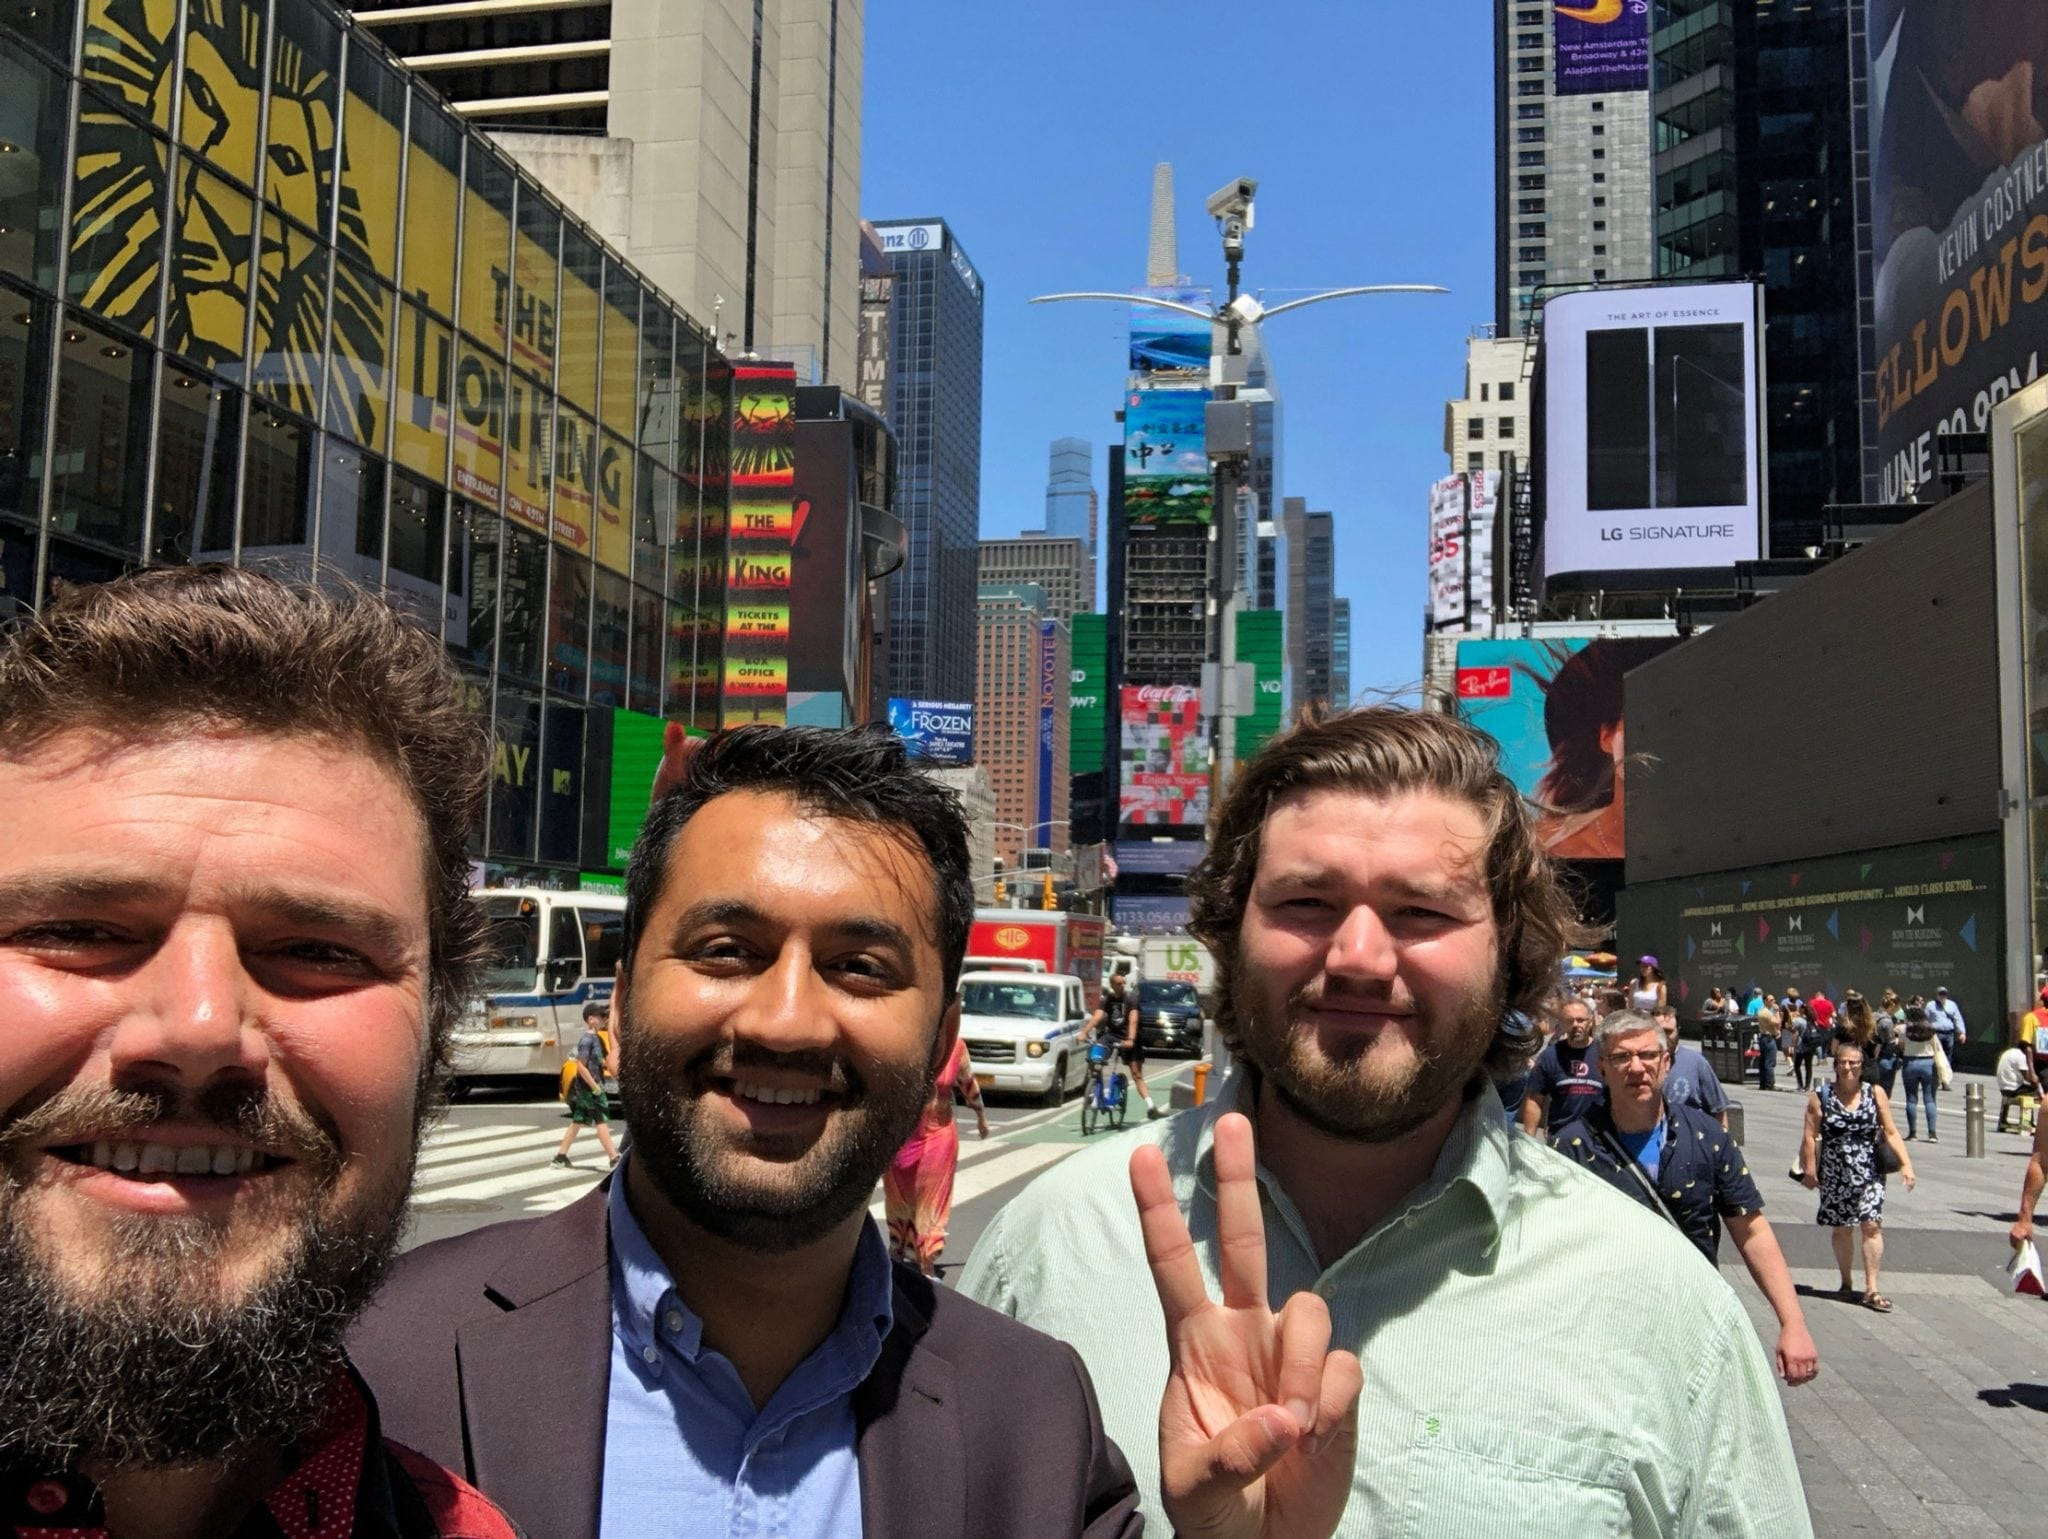 The Monarch Team after a fun time at the SBC Global Event. The team got to learn about the cross section between blockchain and traditional finance.